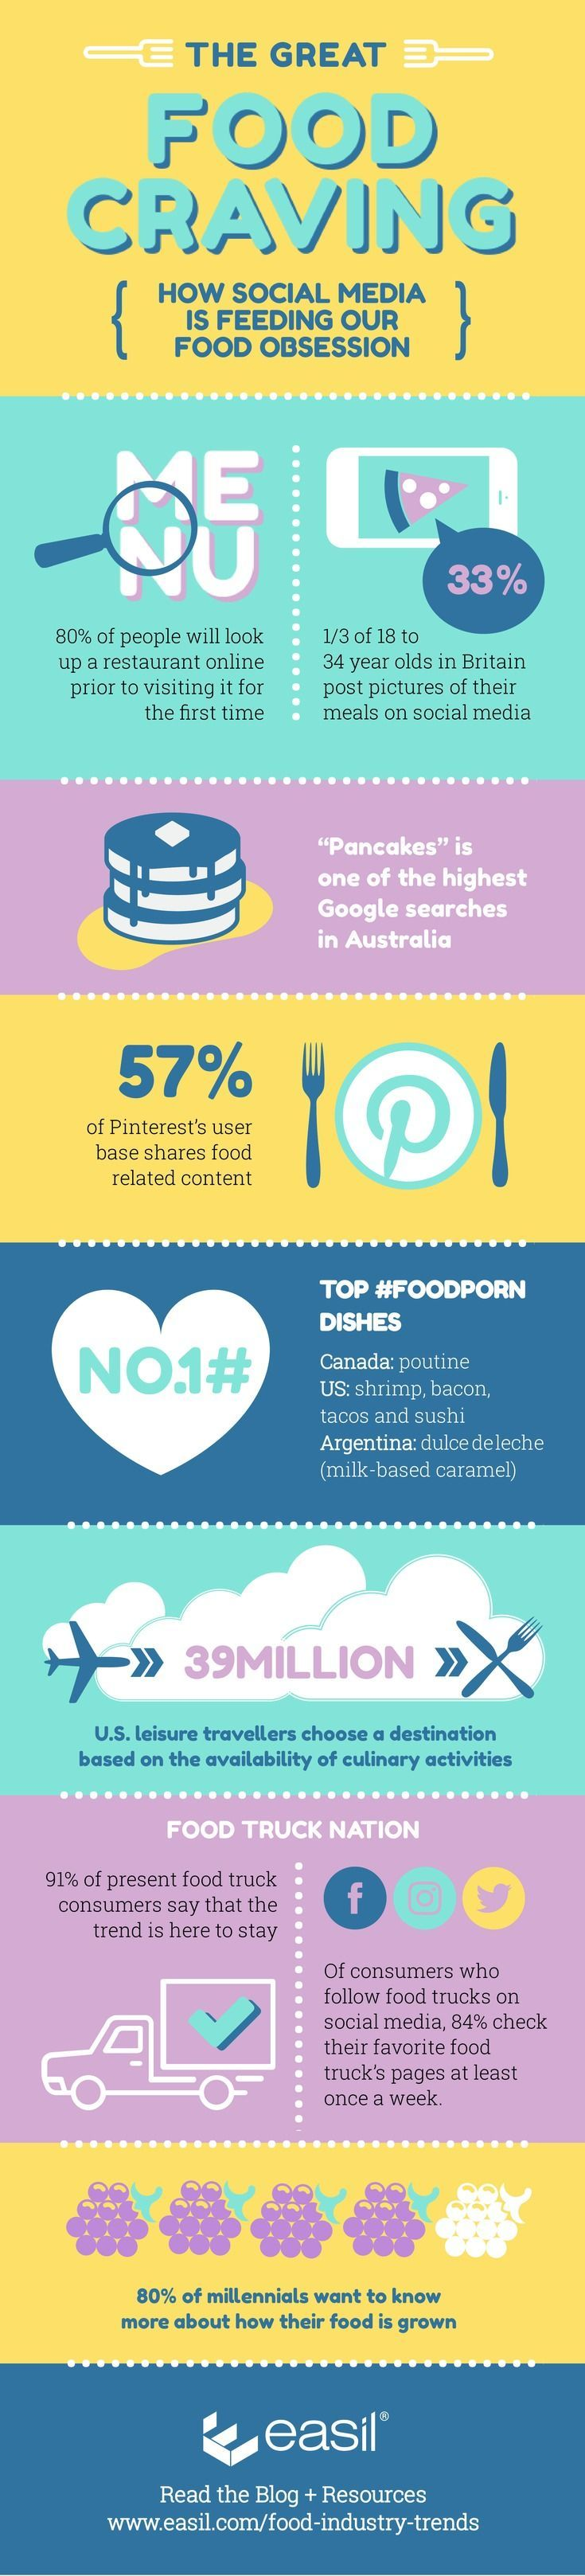 The great food craving - how social media is feeding our food obsession [infographic]. Click to Read More about Food Industry Trends